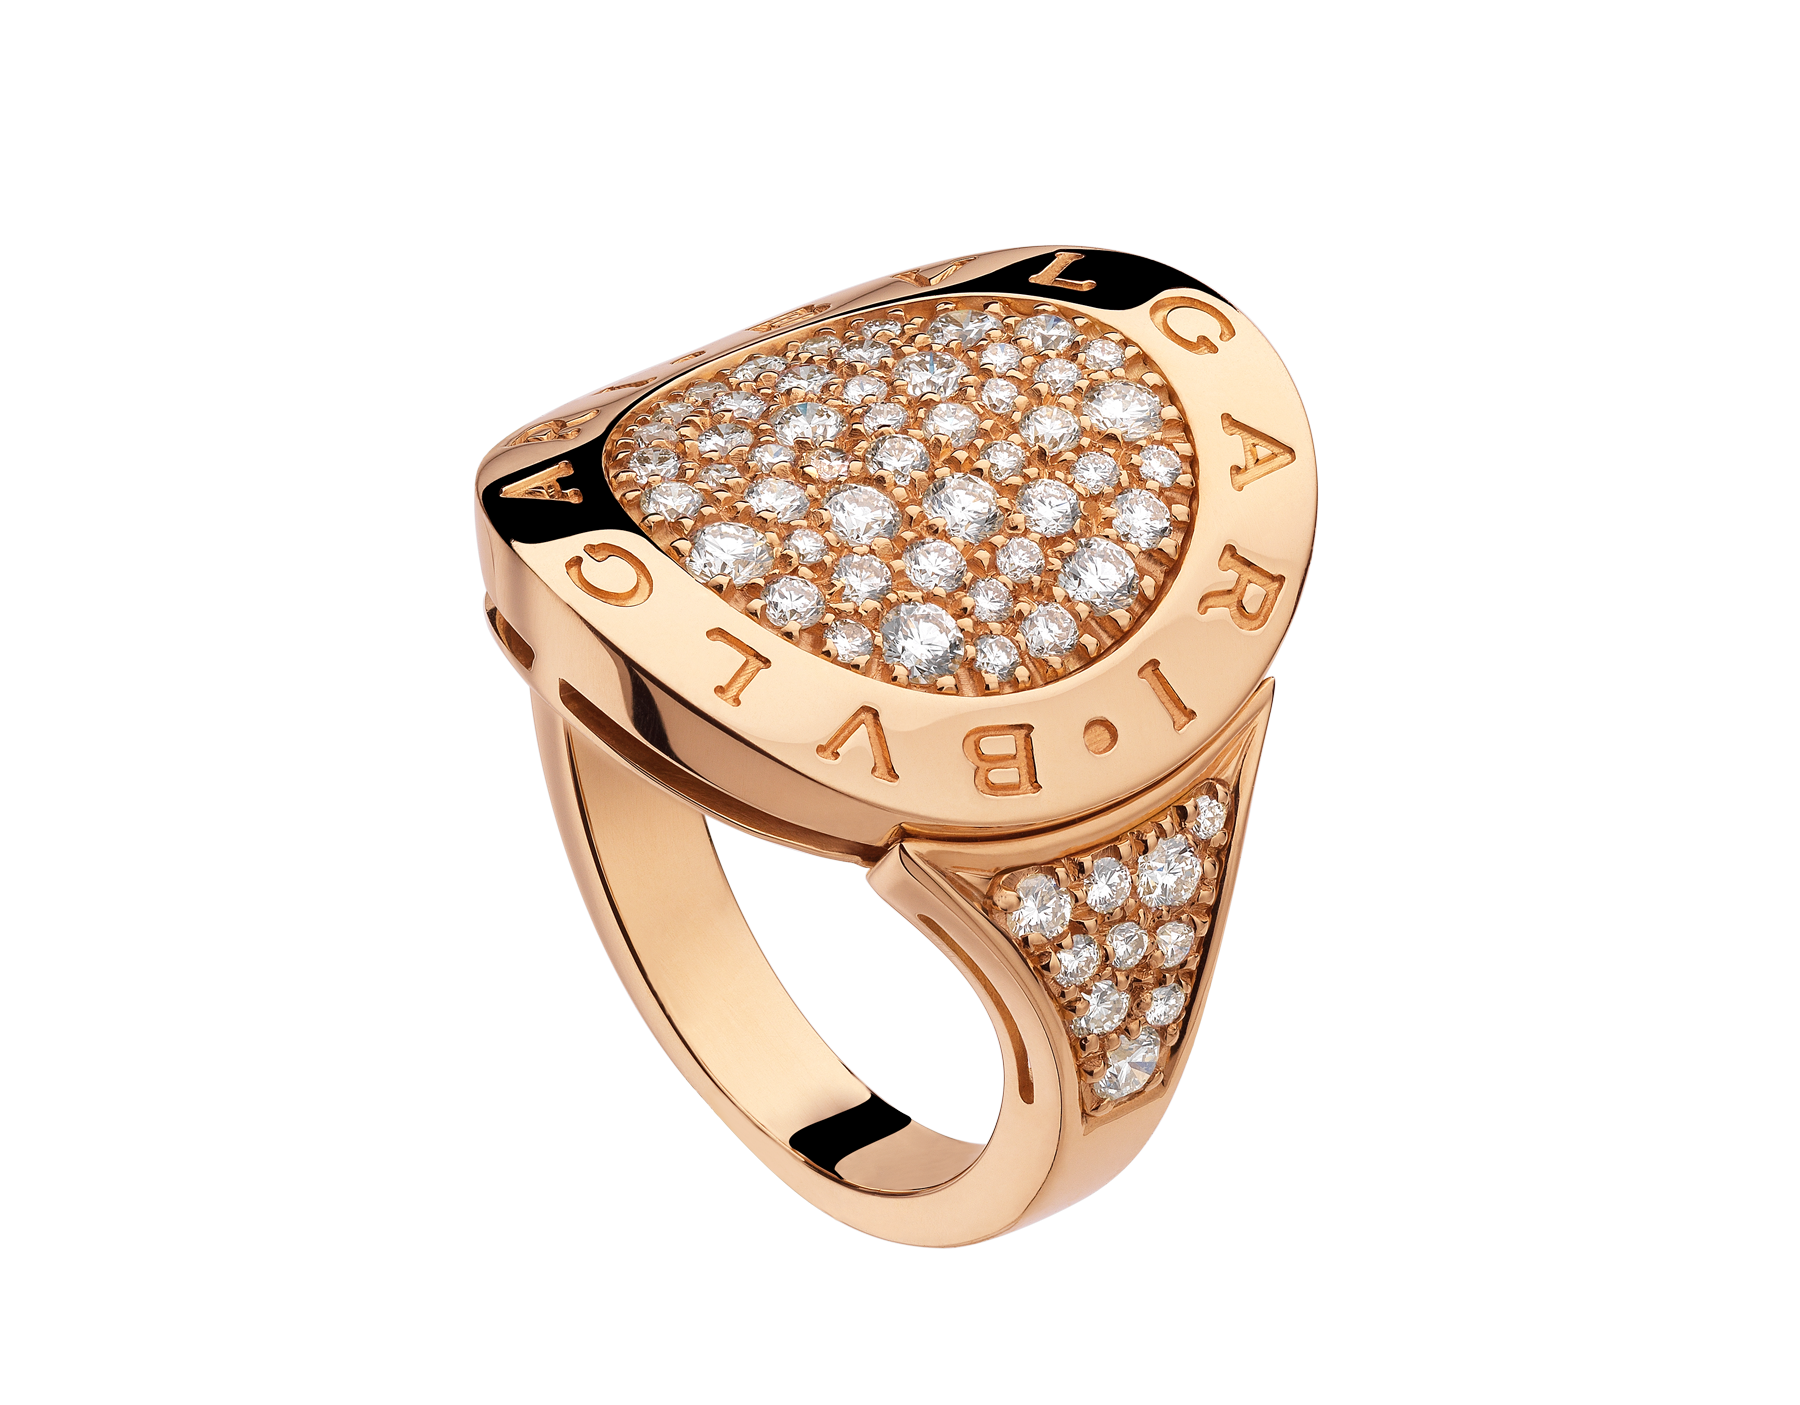 bvlgari bvlgari rose gold diamond ring an854862 discover italian jewelry and other luxury goods